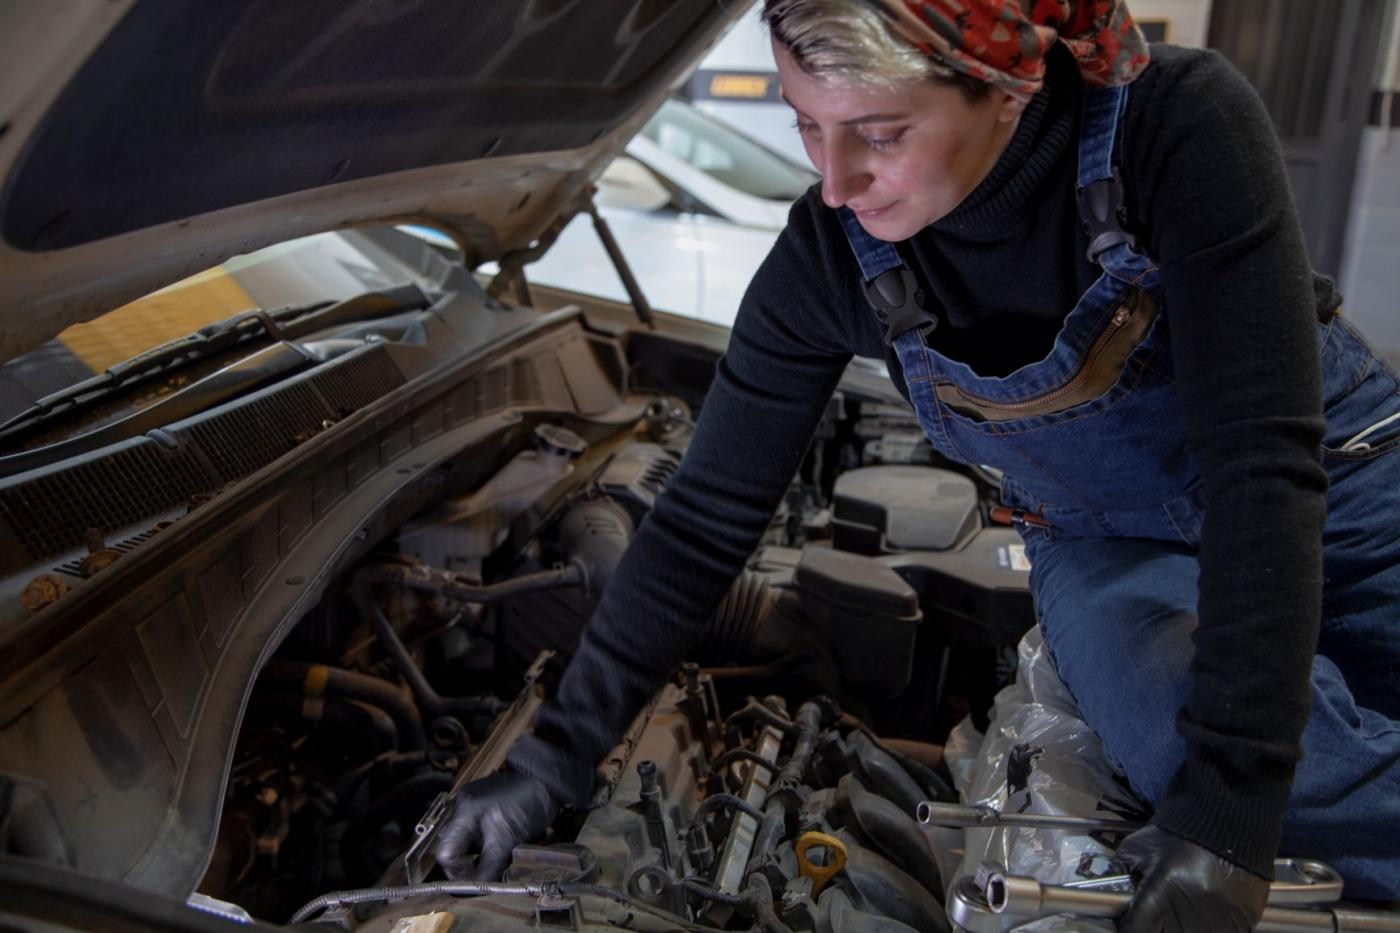 Challenges of Being a Car Mechanic